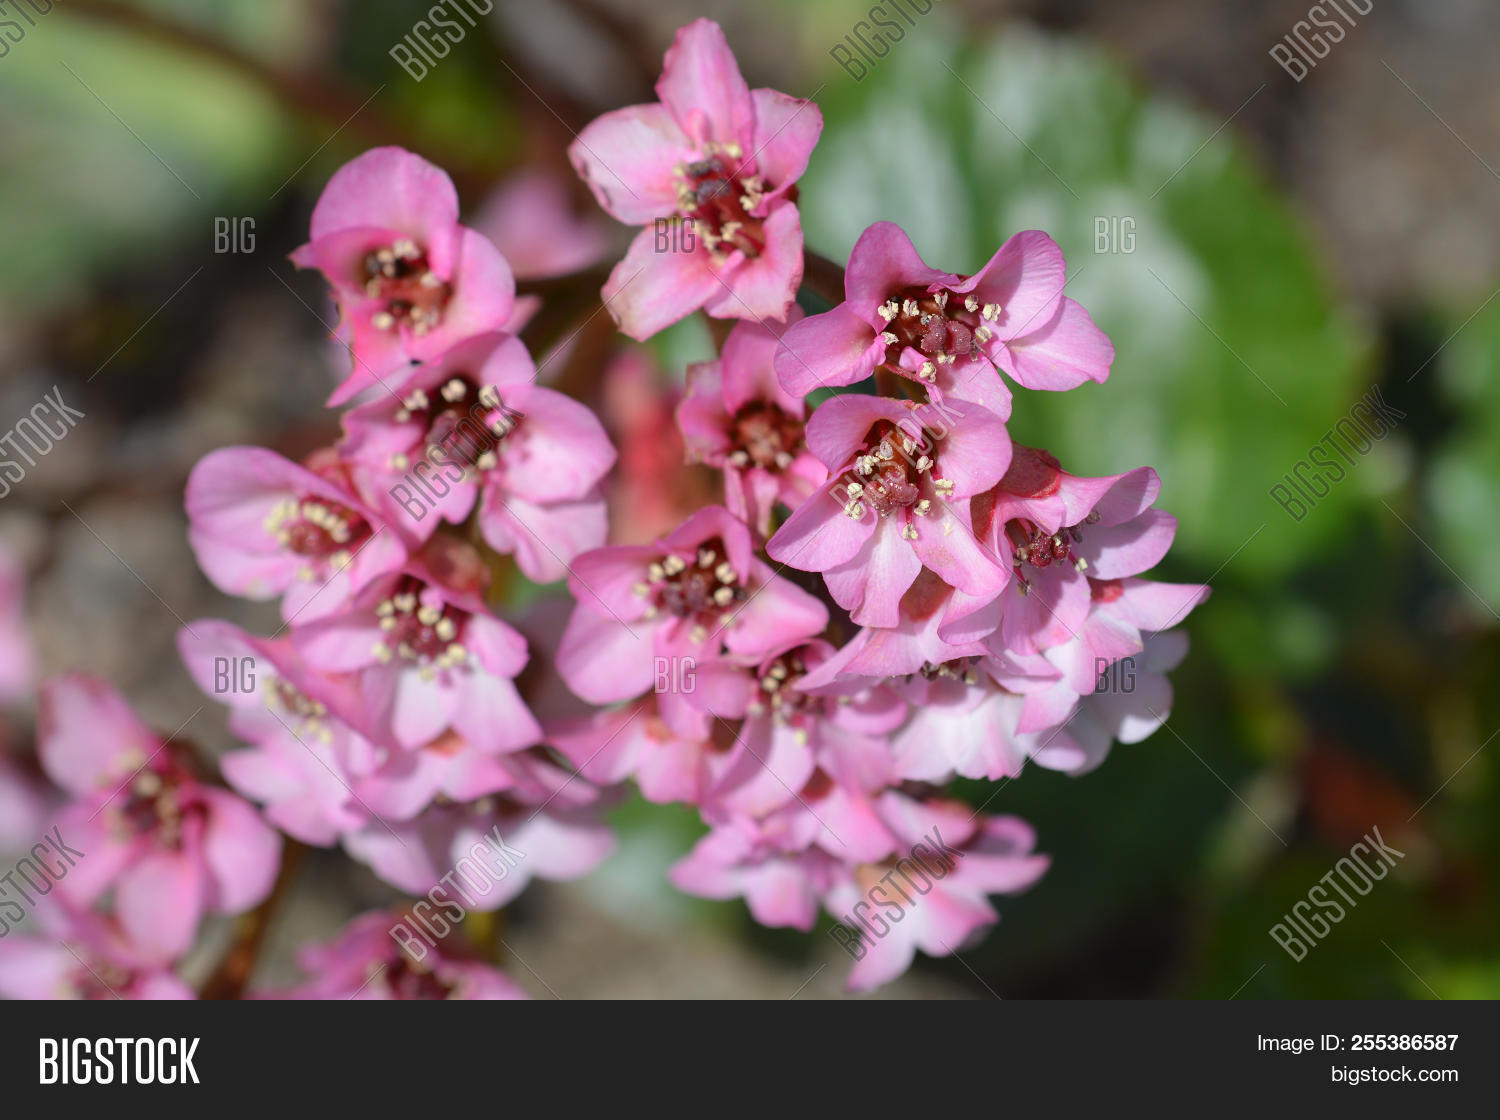 Close bergenia pink image photo free trial bigstock close up of bergenia pink flowers latin name bergenia stracheyi var afganica mightylinksfo